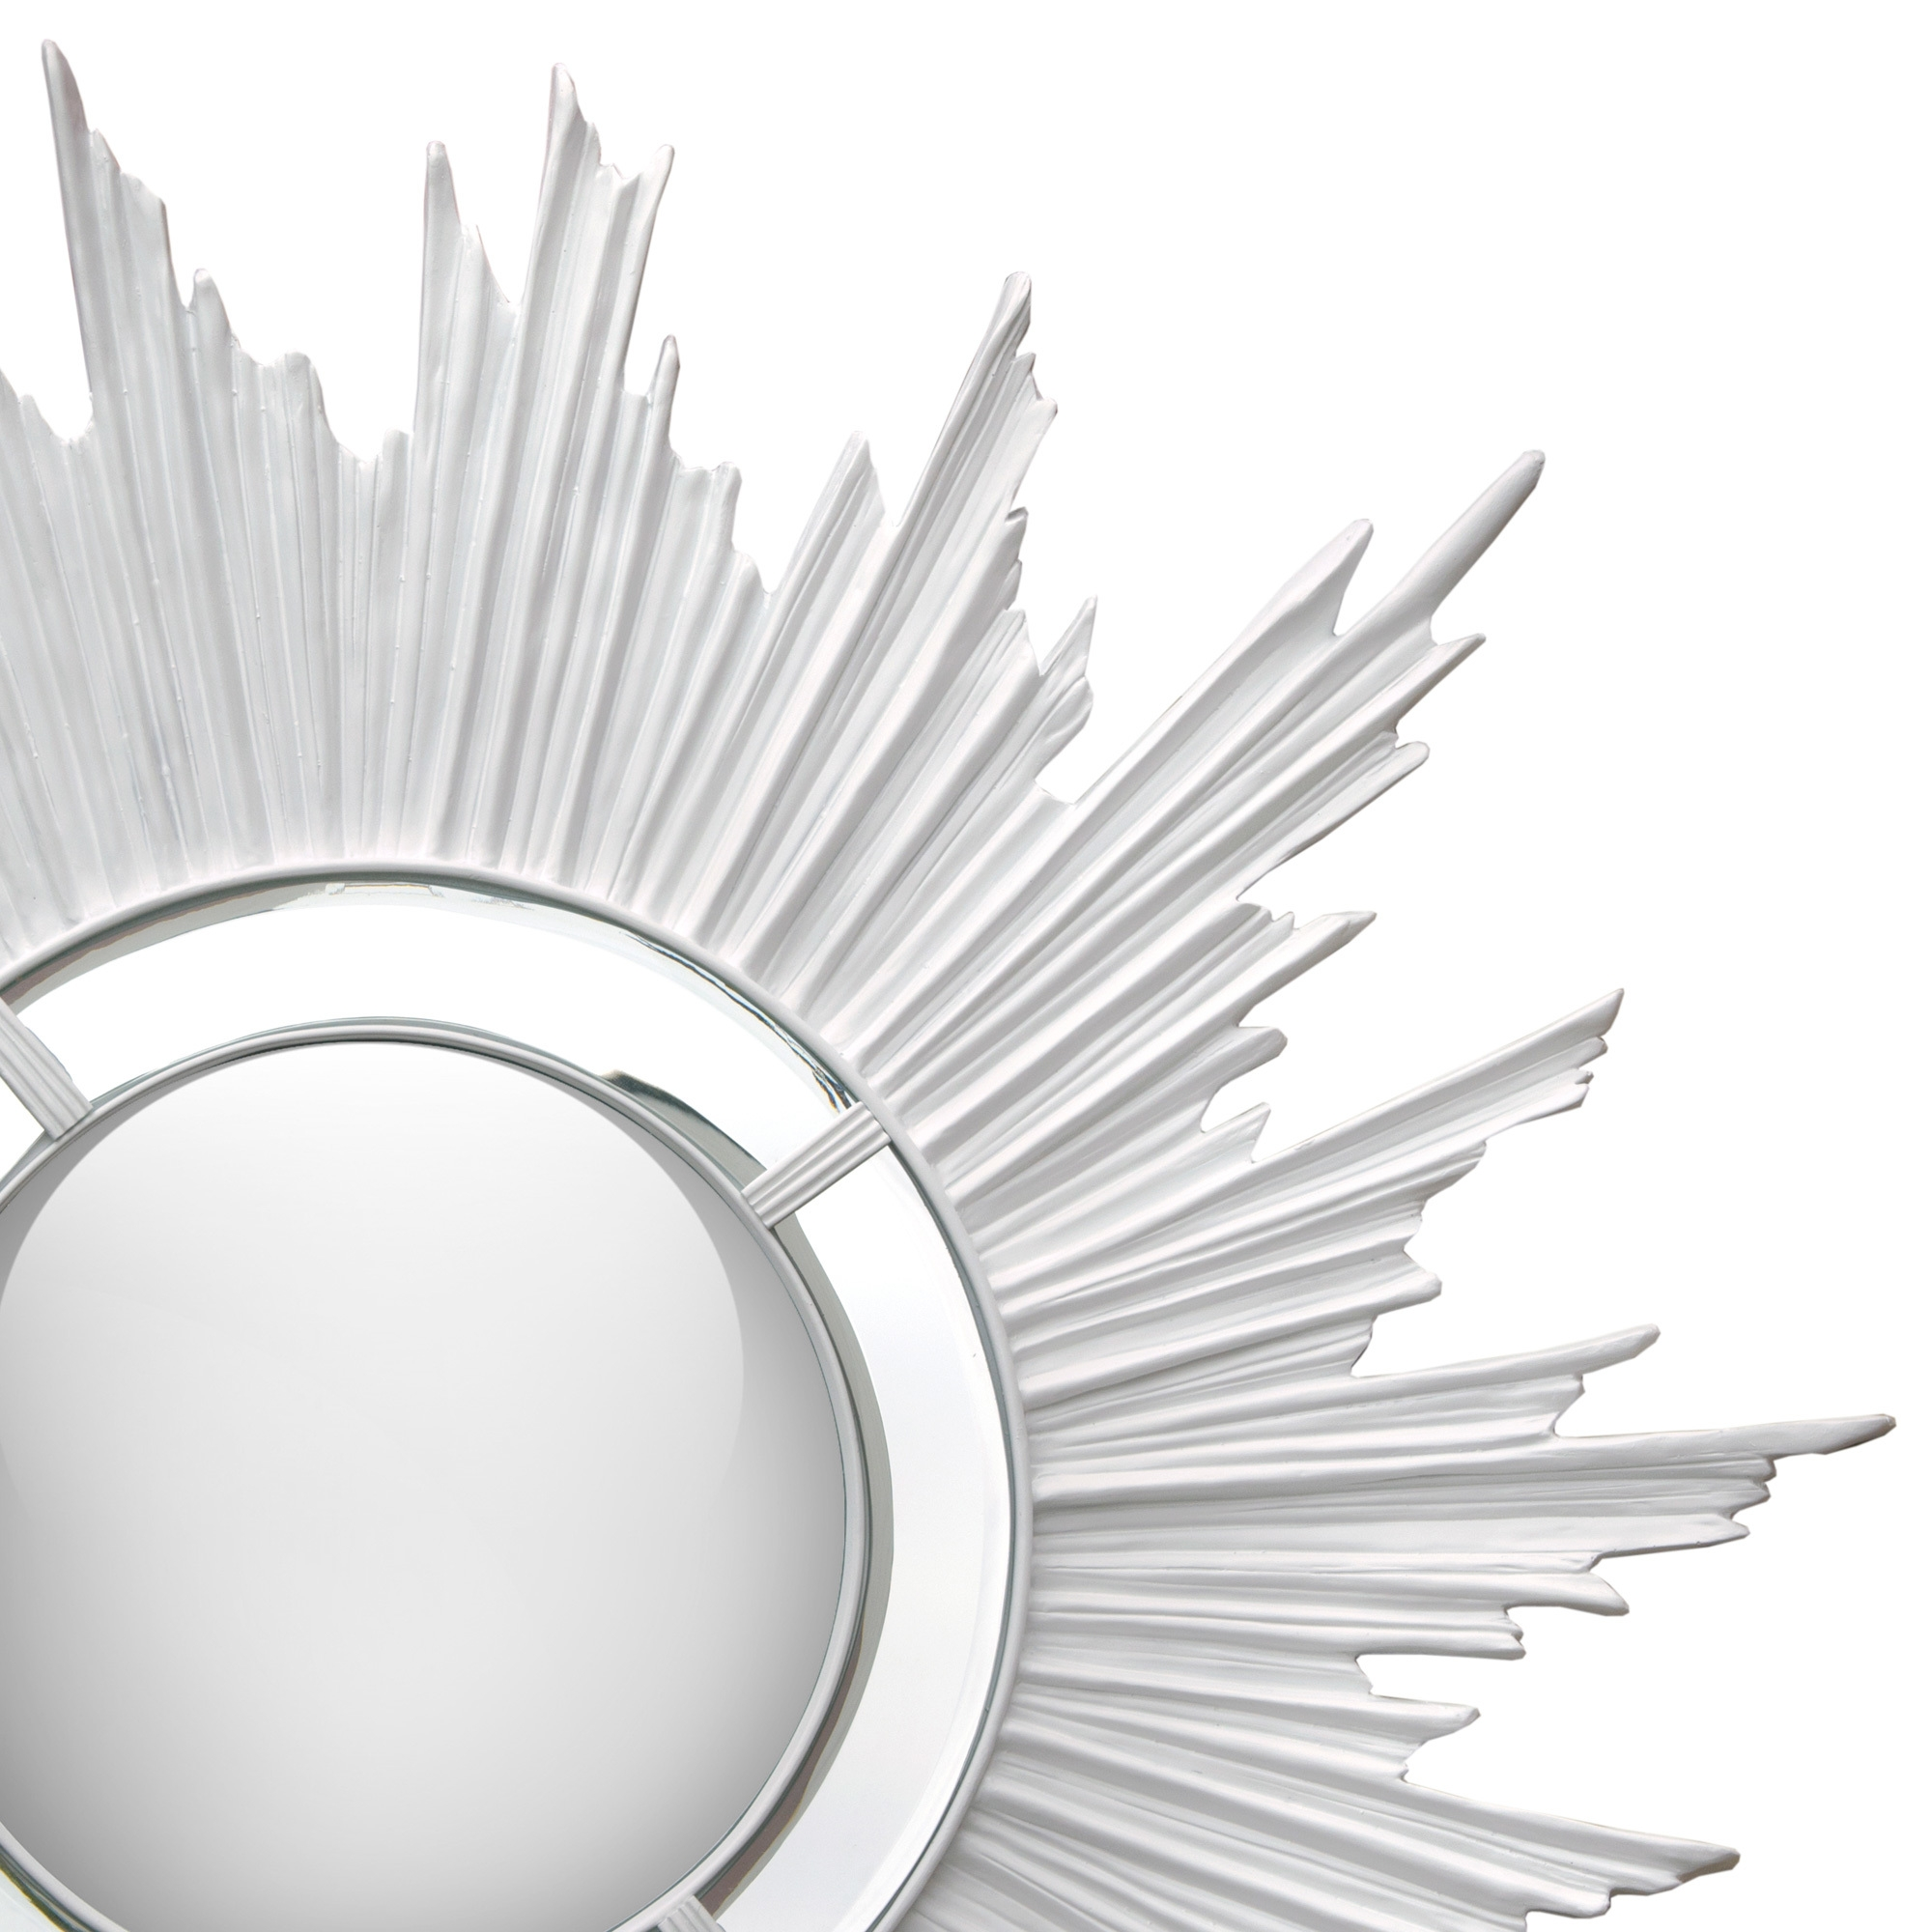 Sunburst Convex Wall Mirror - White